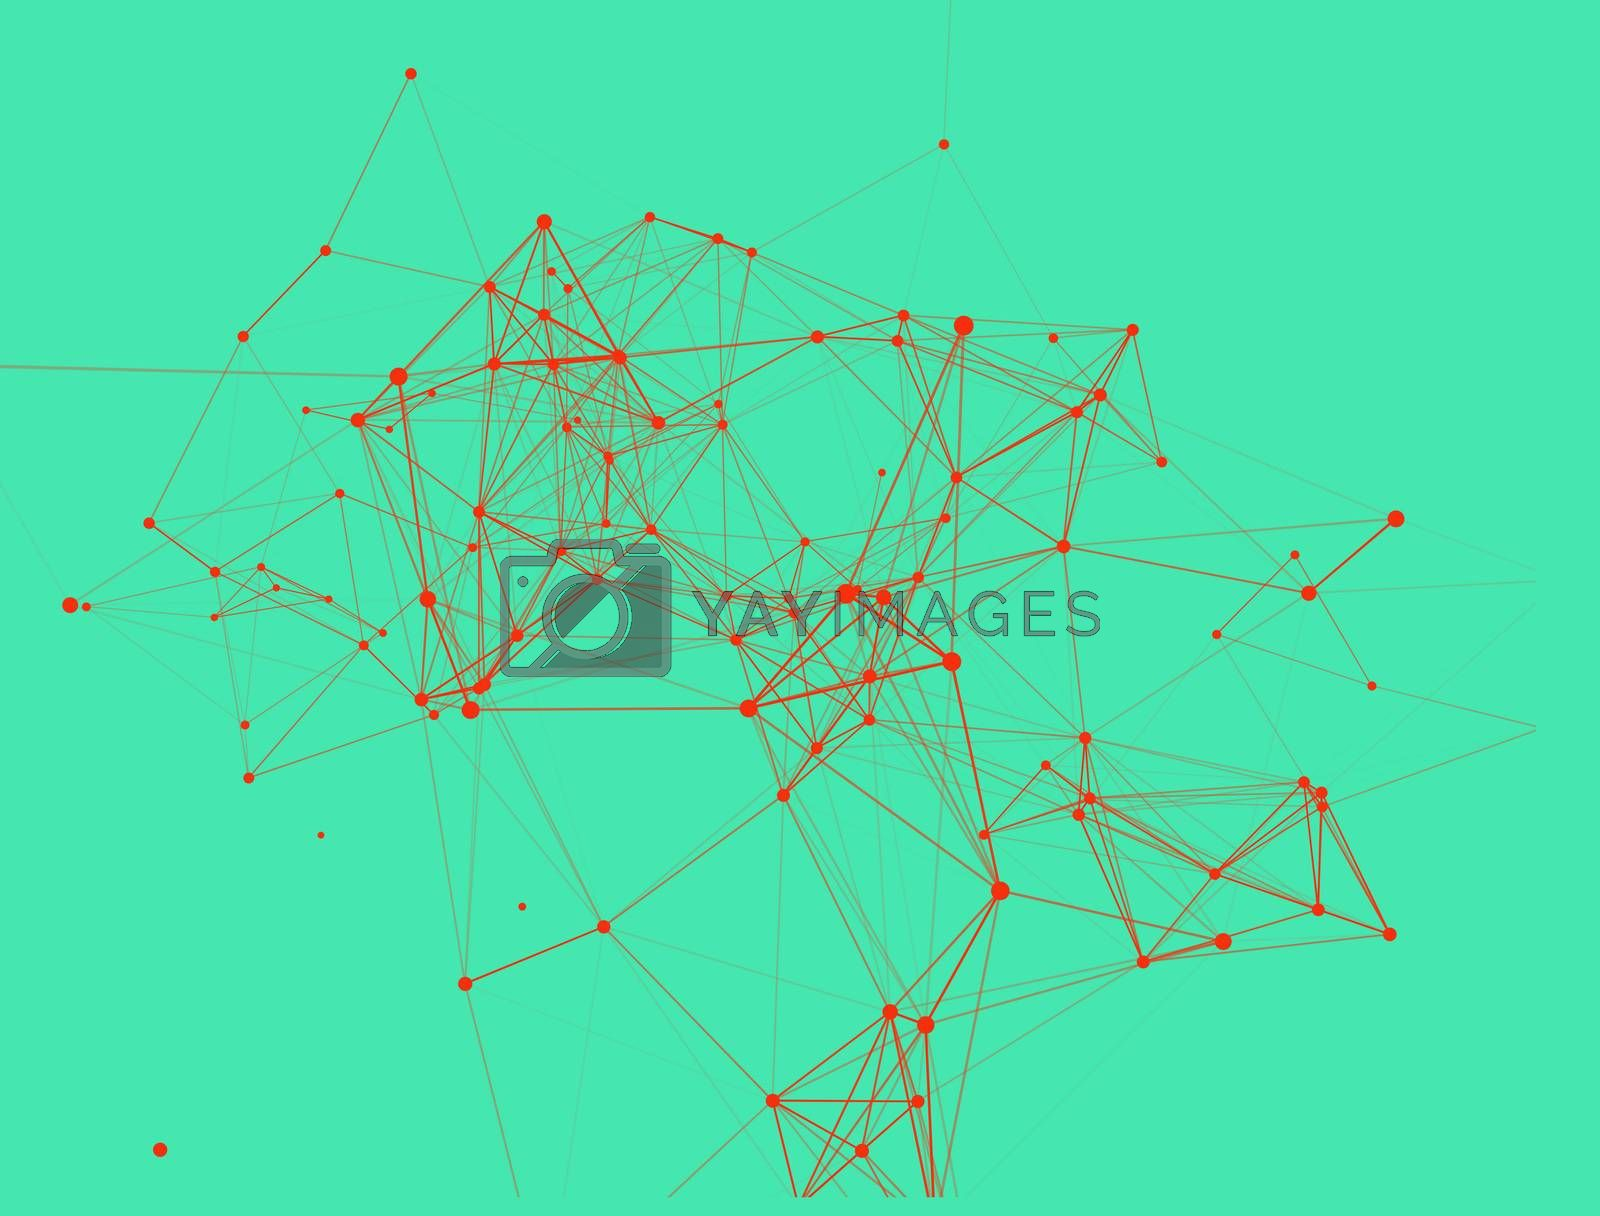 Trendy line art icon with red dots and line dots on green background. Decorative backdrop. Business concept. Abstract geometric pattern. Black design element. Trendy decor.